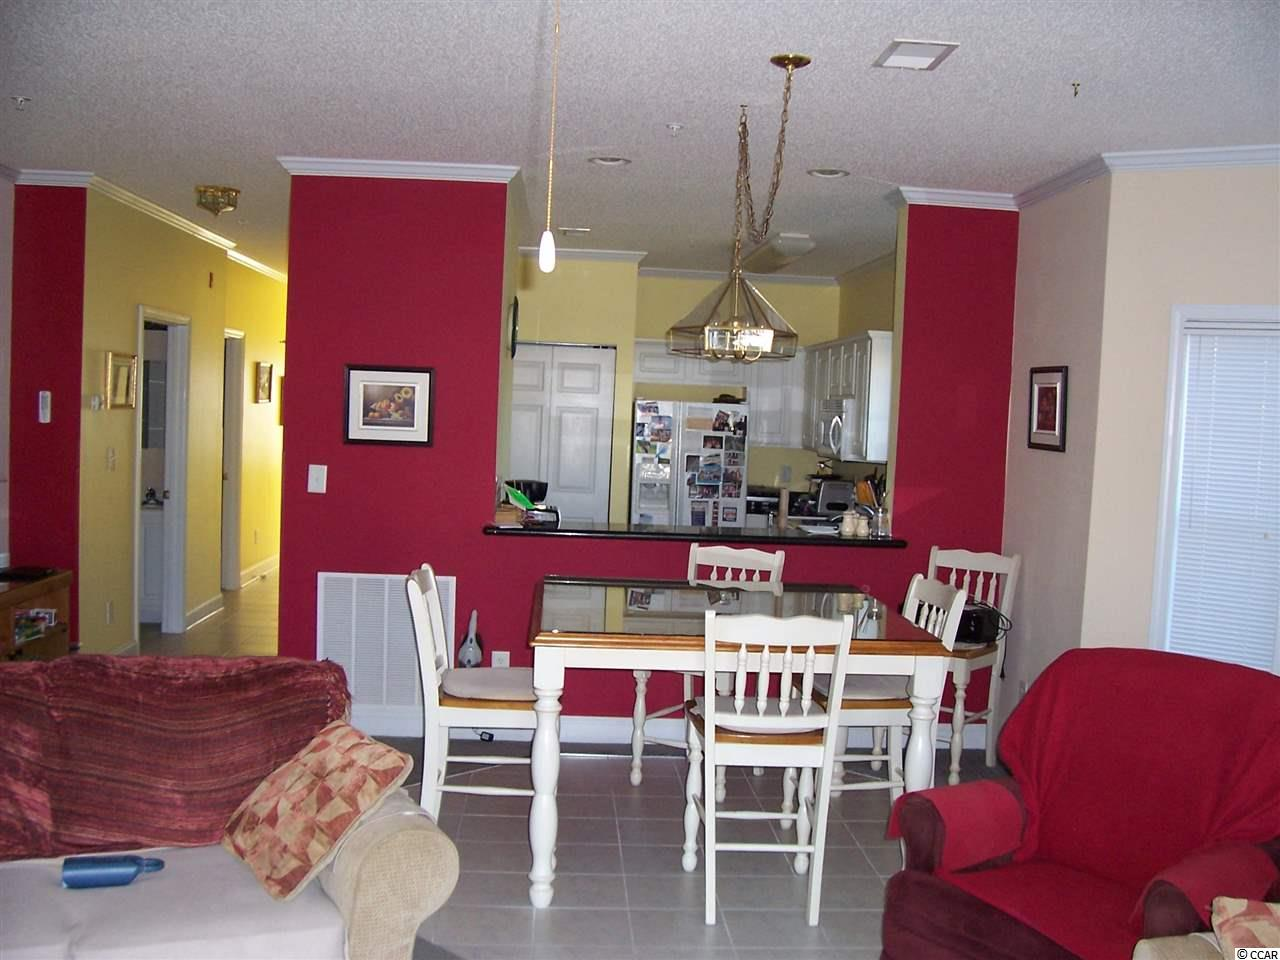 3 bedroom condo at 1100 Commons Blvd